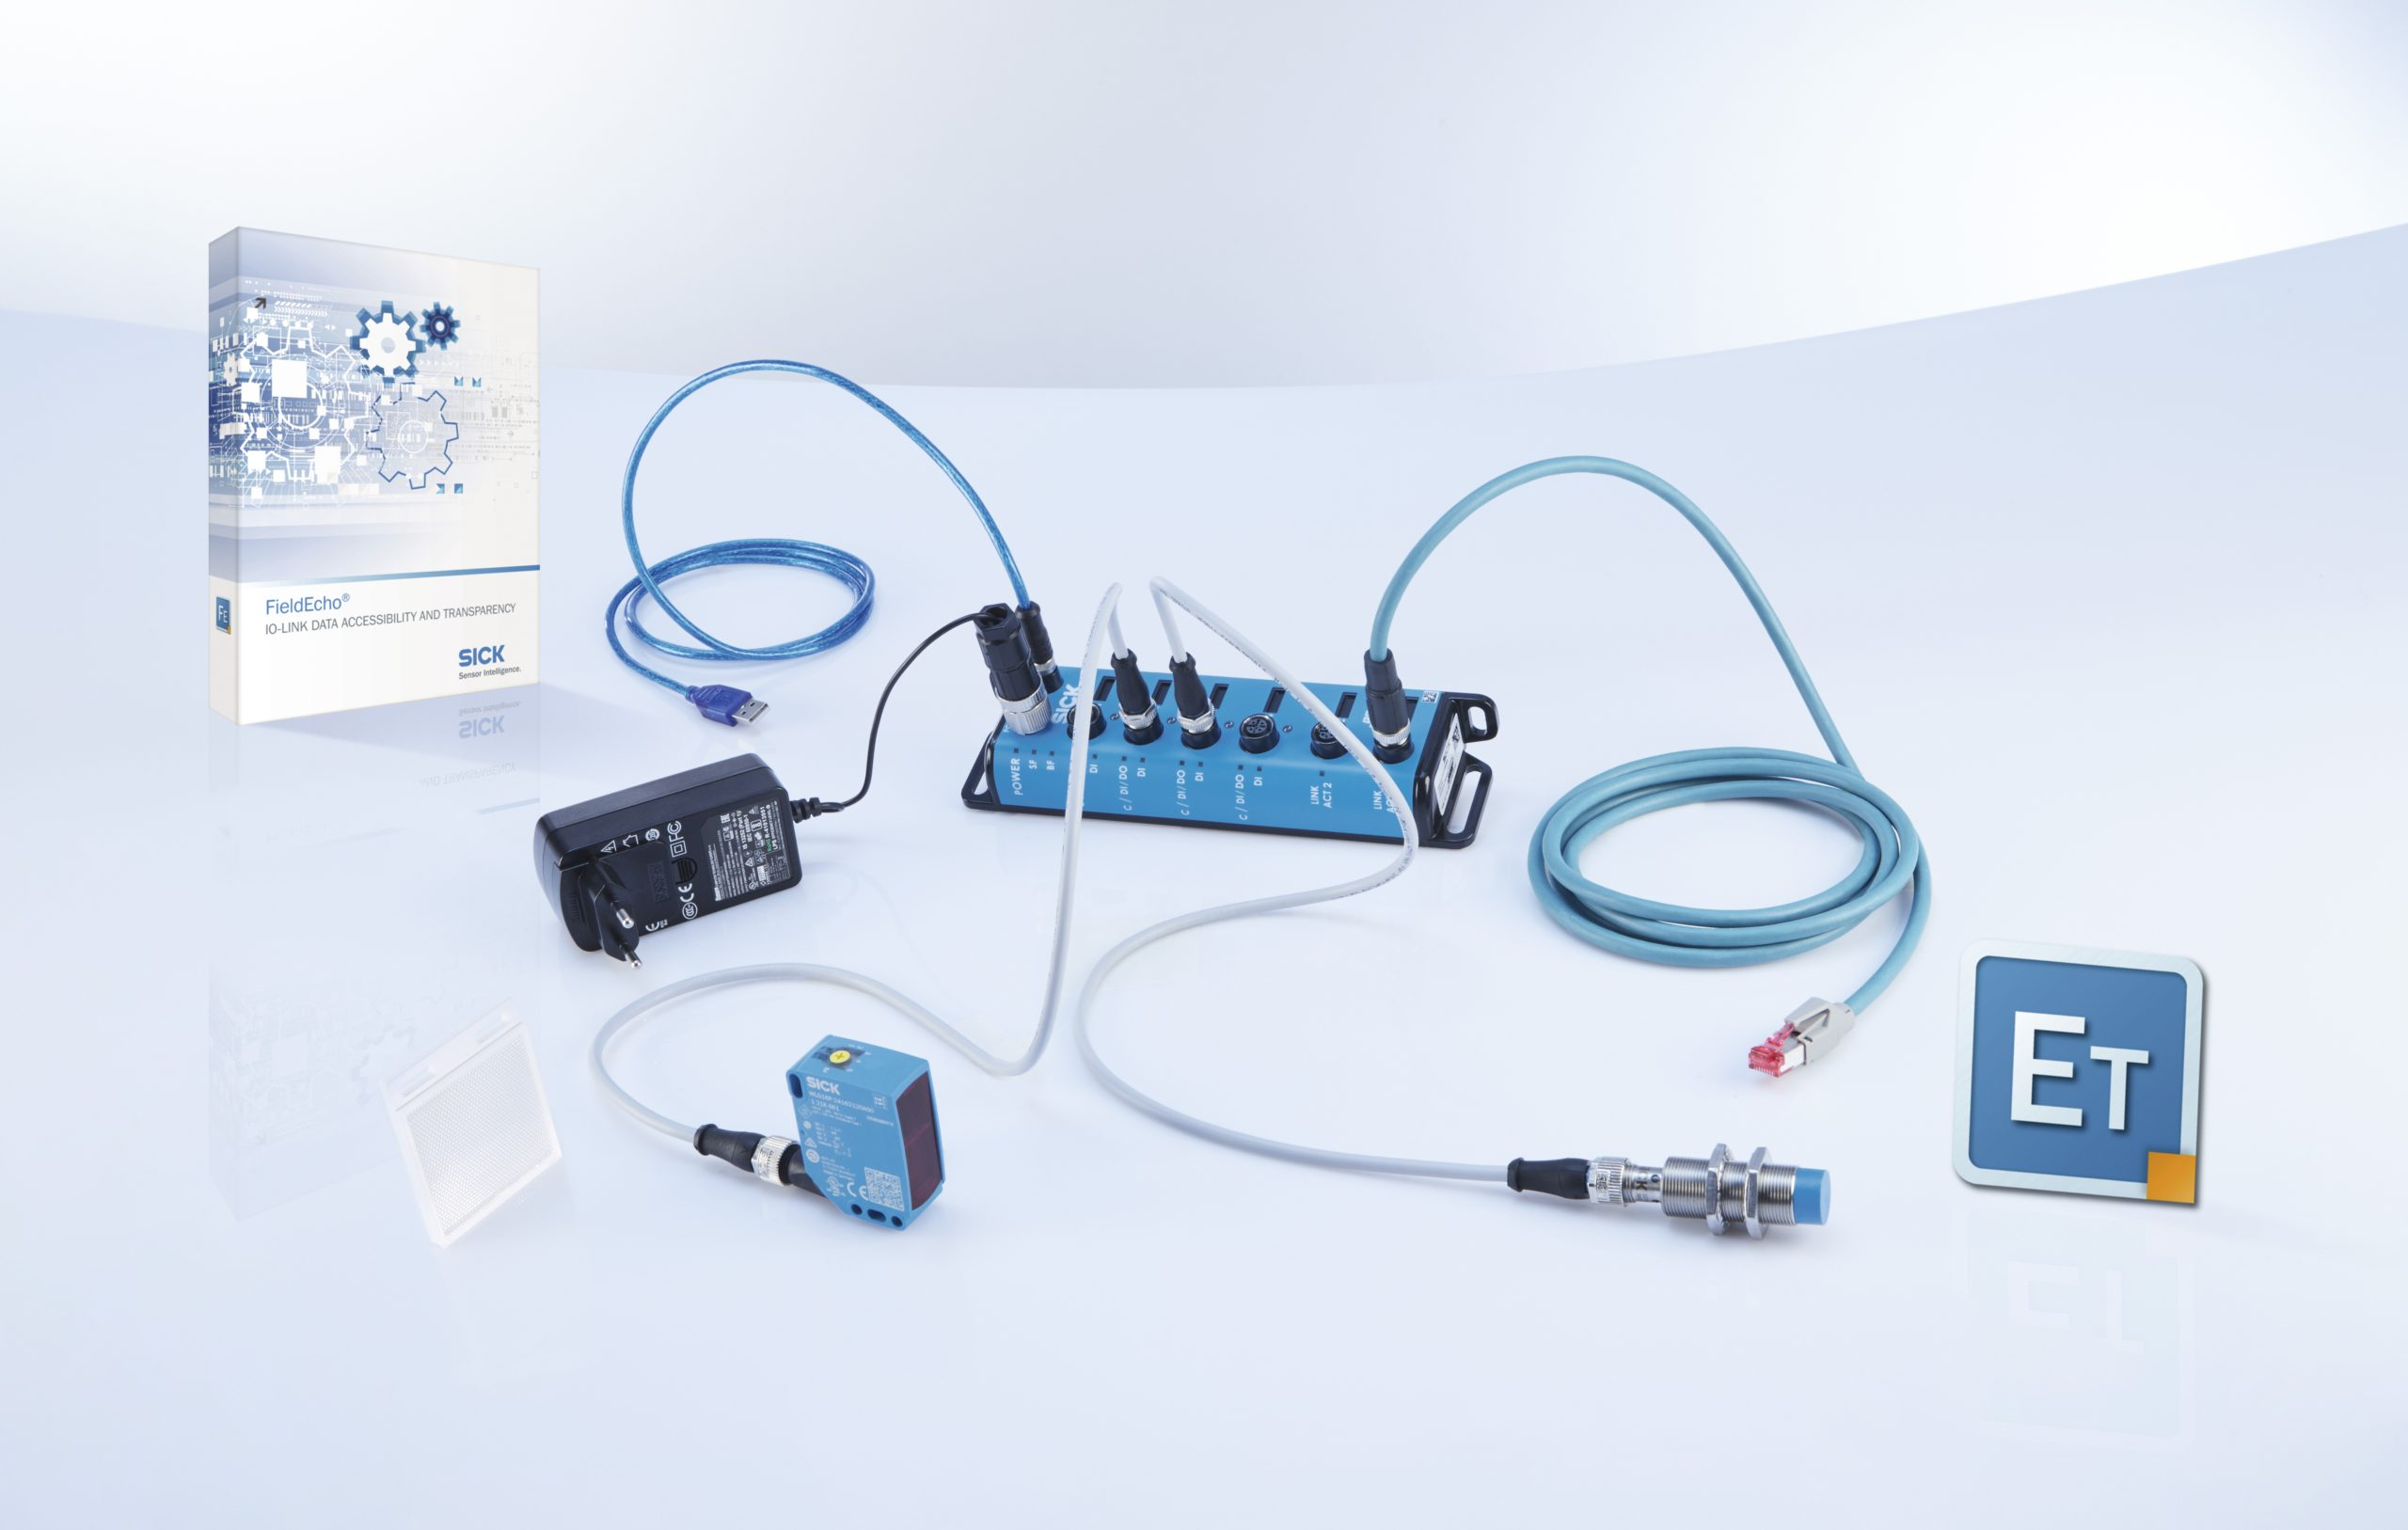 IO-Link devices, FieldEcho® Helps Take IO-Link a Step Farther into Industry 4.0